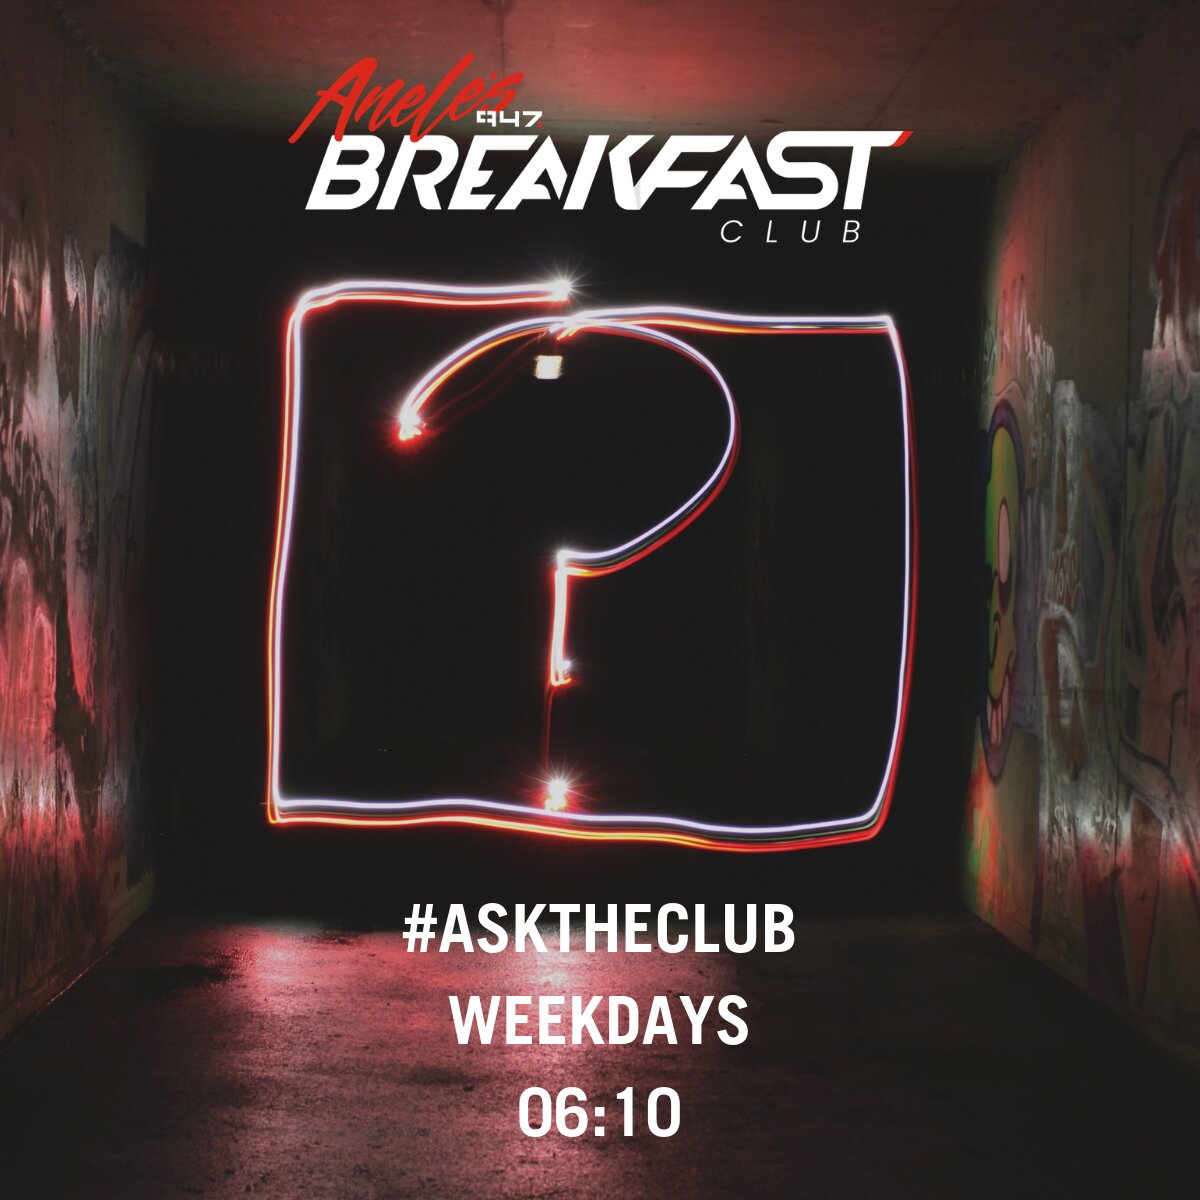 Ask The Club - Ever wanted to know many girls Alex has French kissed?